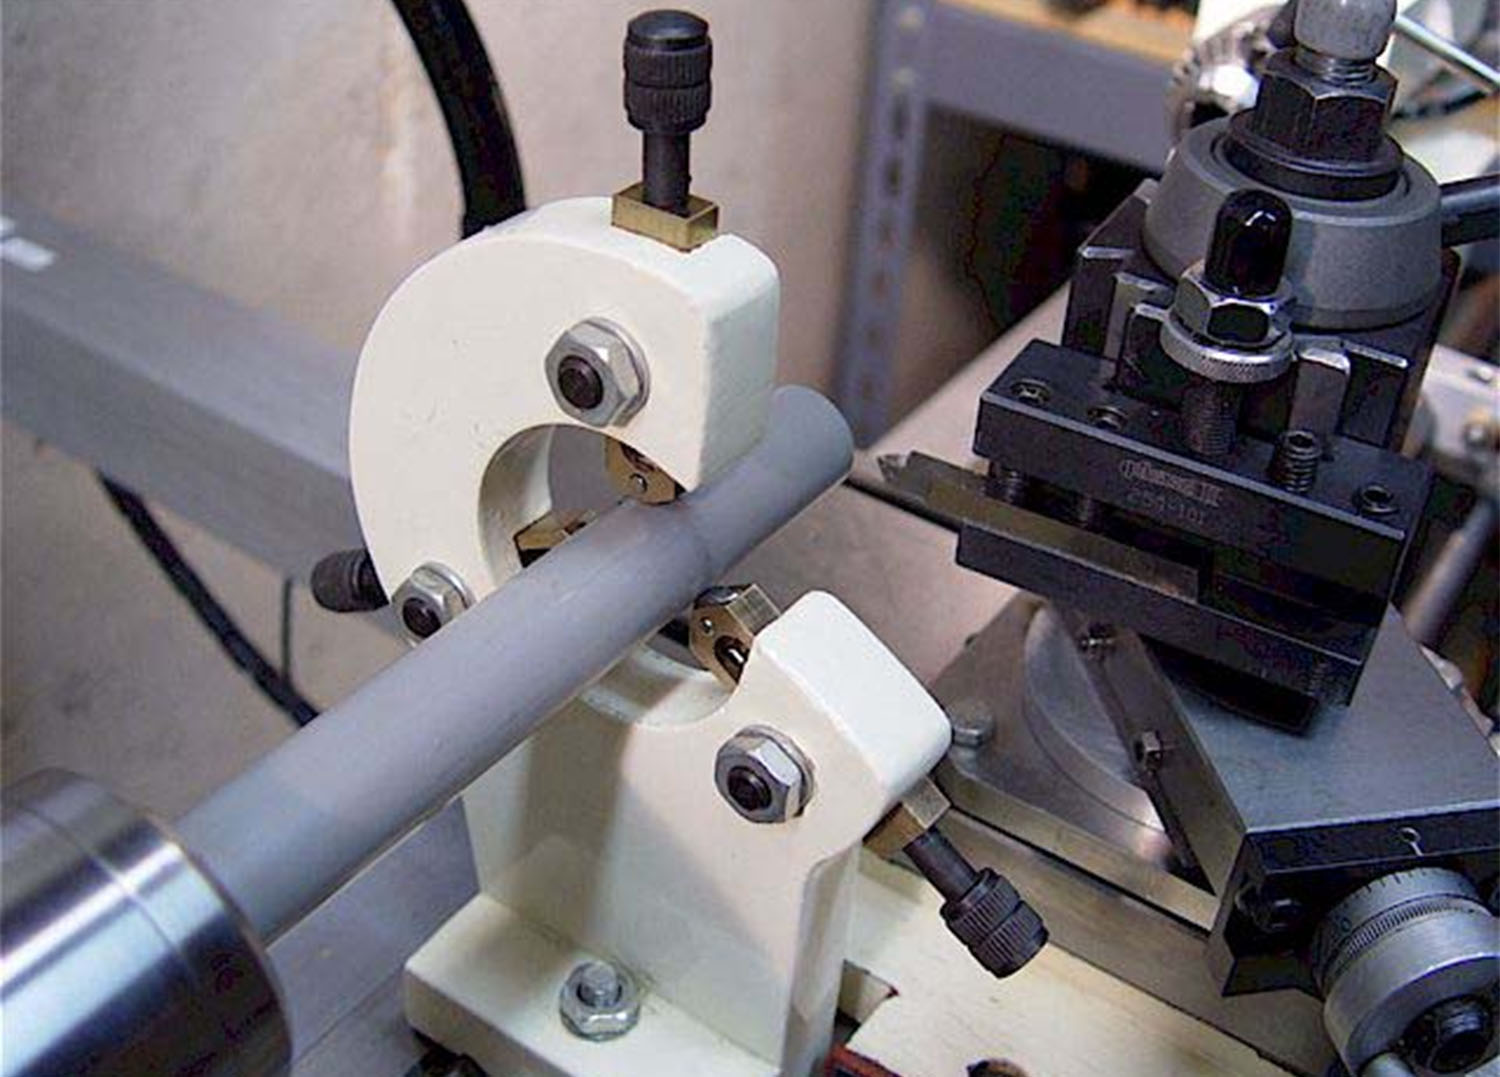 What Does Cnc Stand For >> Work Supporting Devices Used in Machining Process - Q Hunt